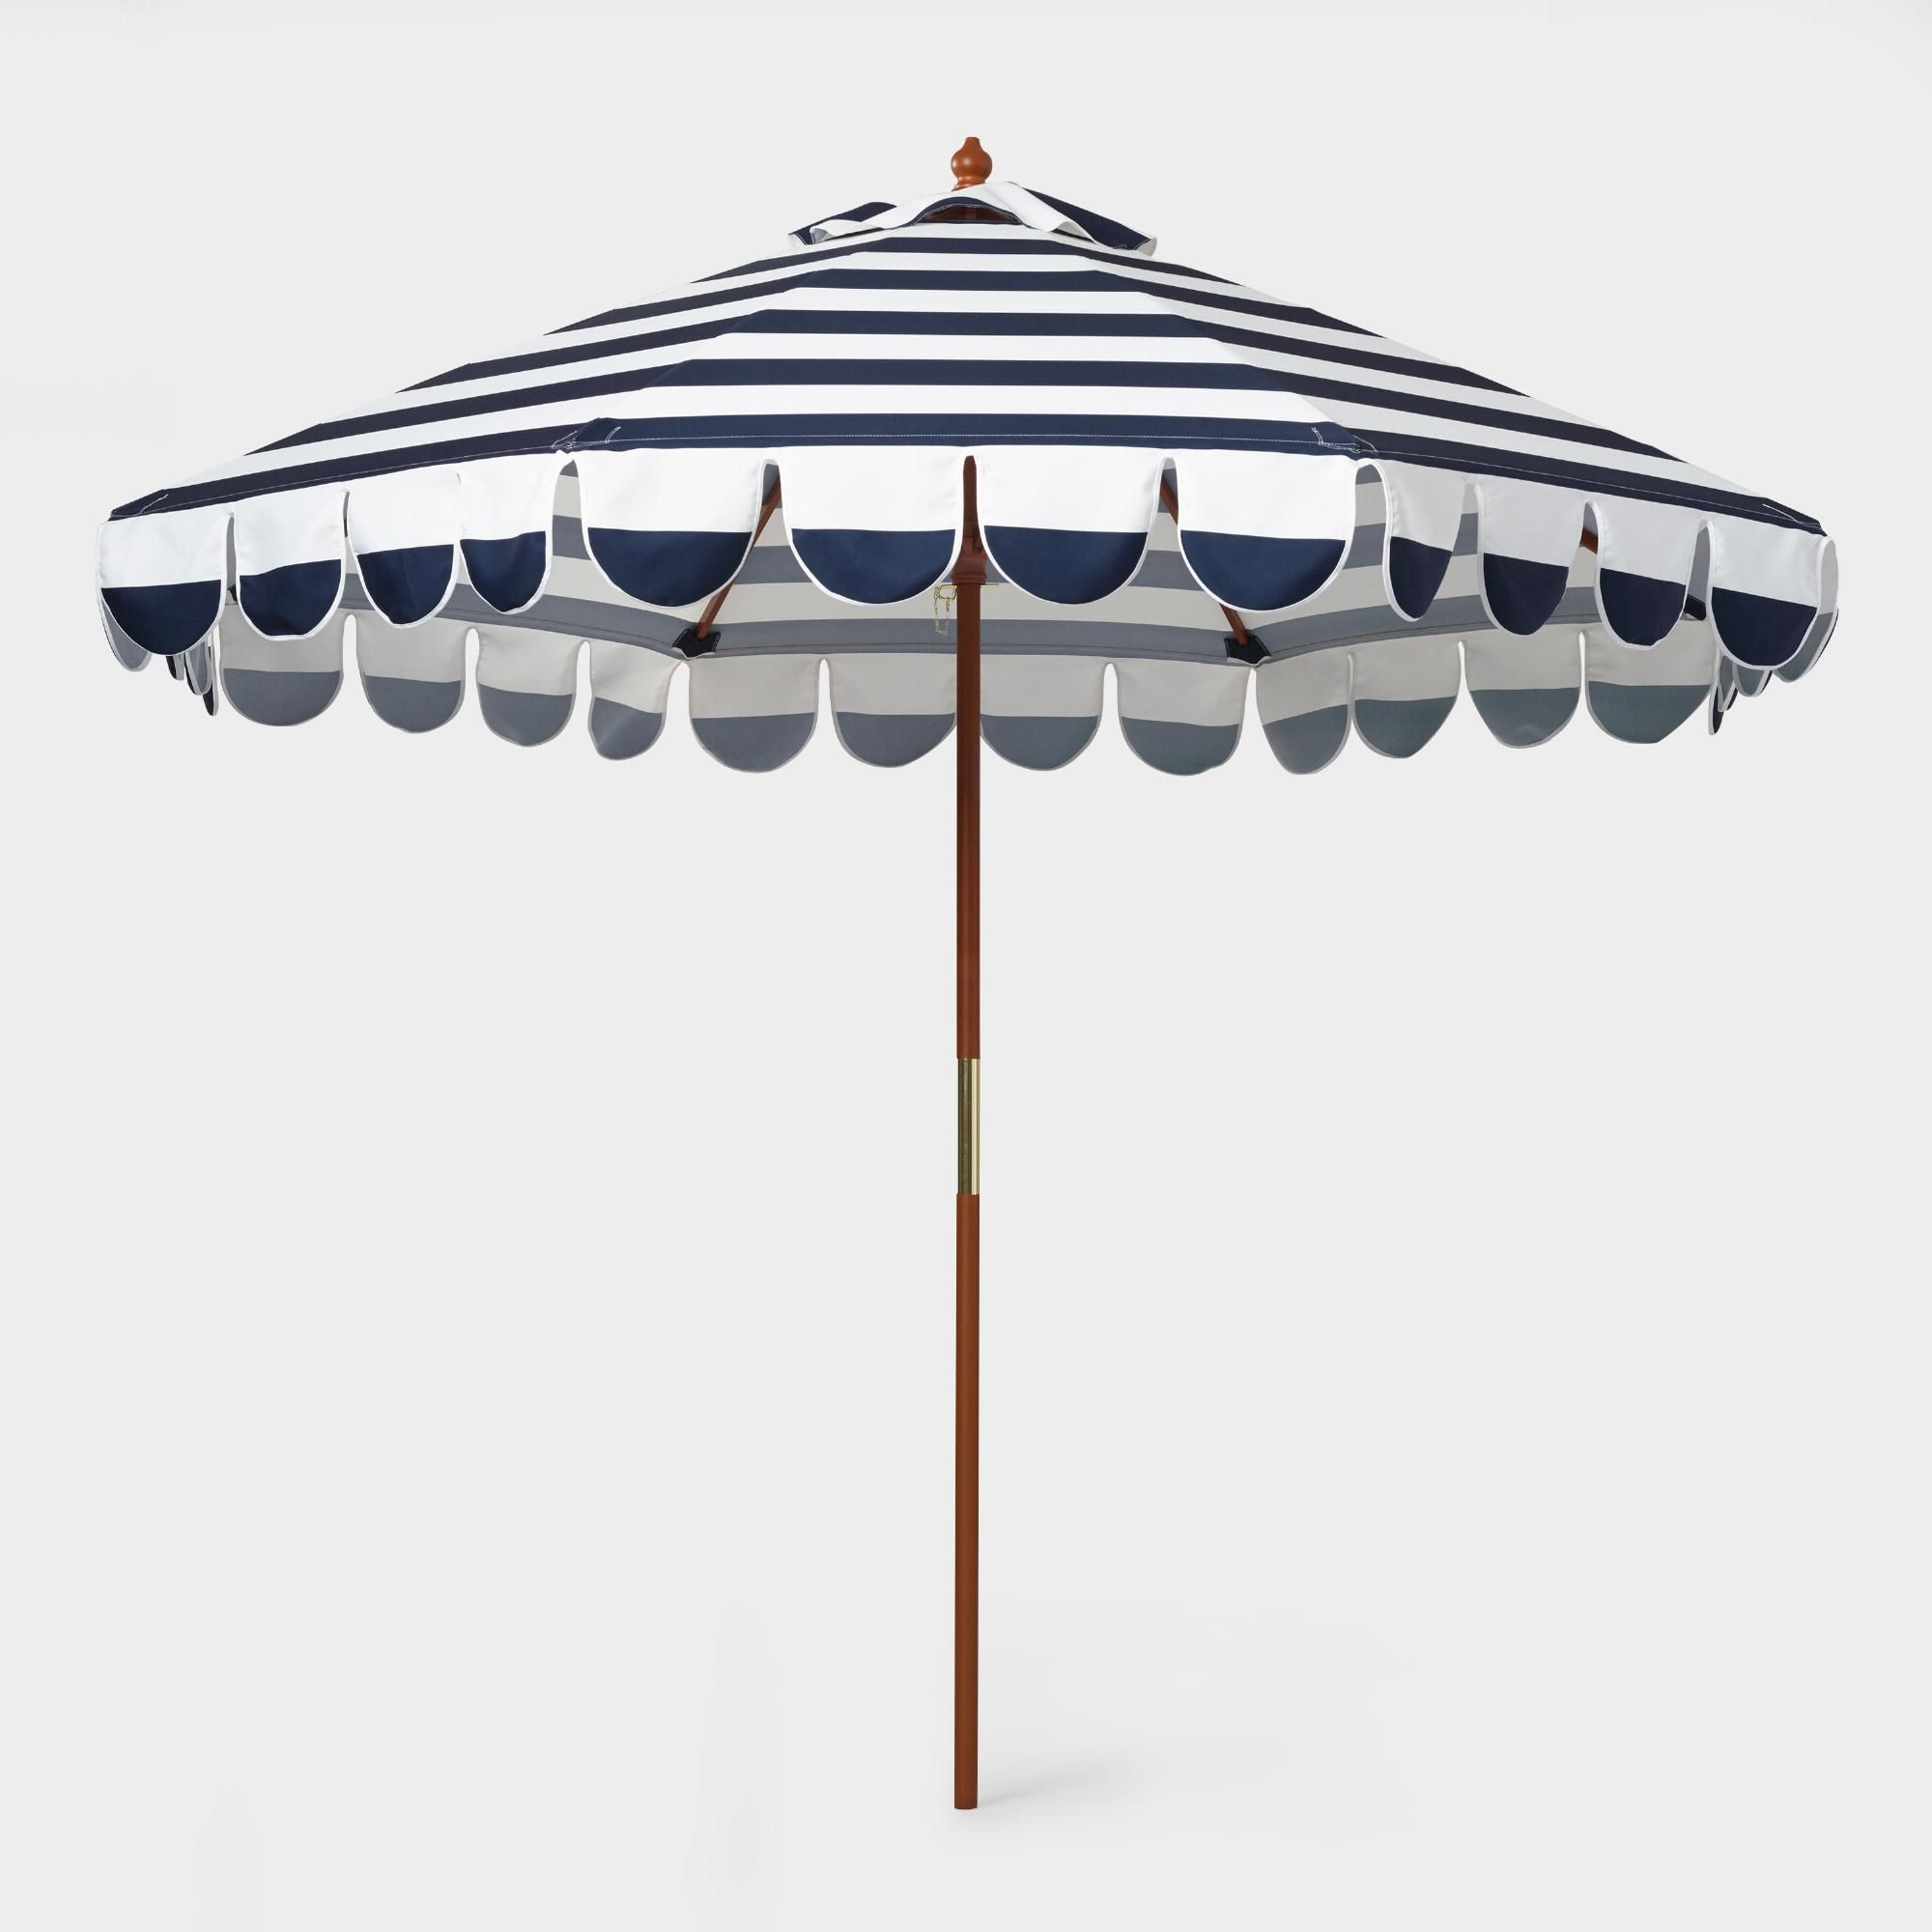 Best And Newest Lambeth Market Umbrellas In Featuring A Classic Blue And White Striped Design With Scallop Trim (View 13 of 20)